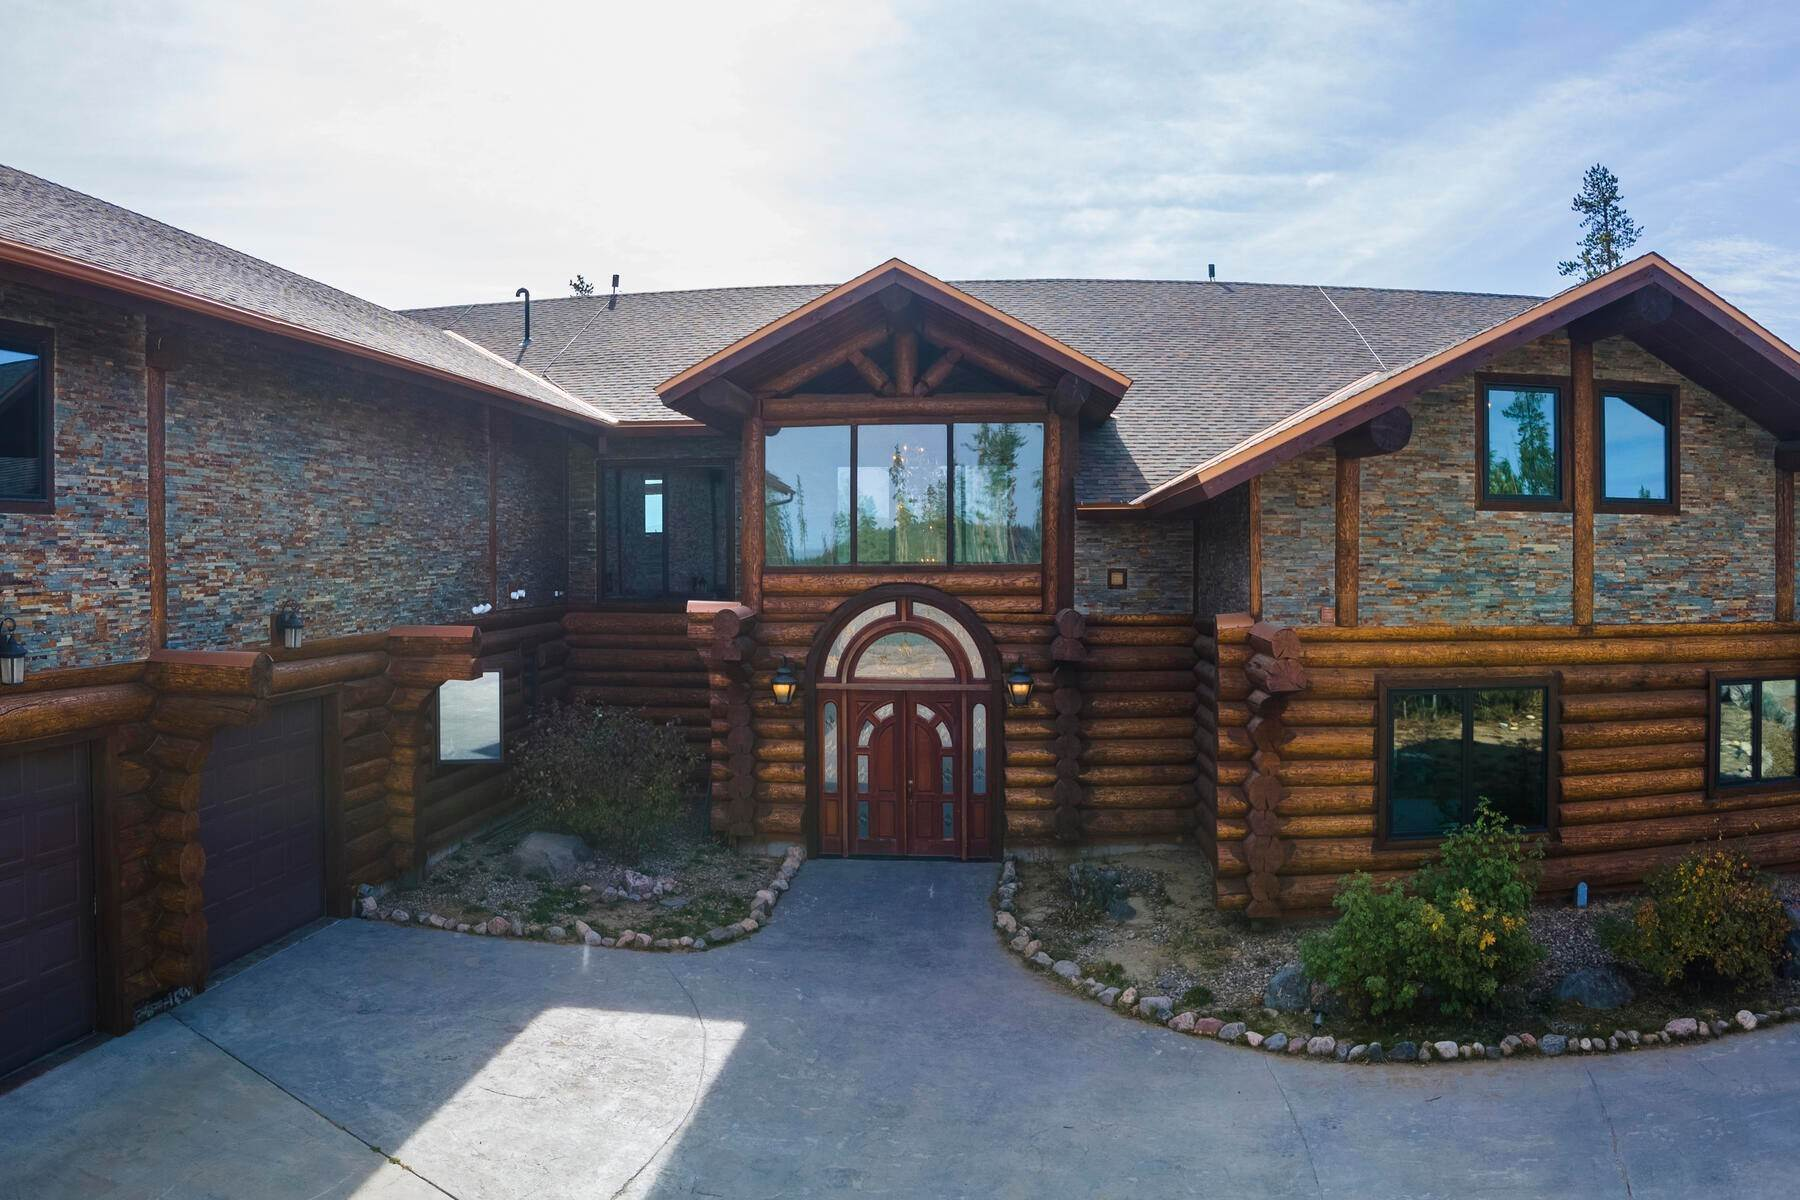 Single Family Homes for Active at Majestic Log Home 119 GCR 5194 Fraser, Colorado 80442 United States